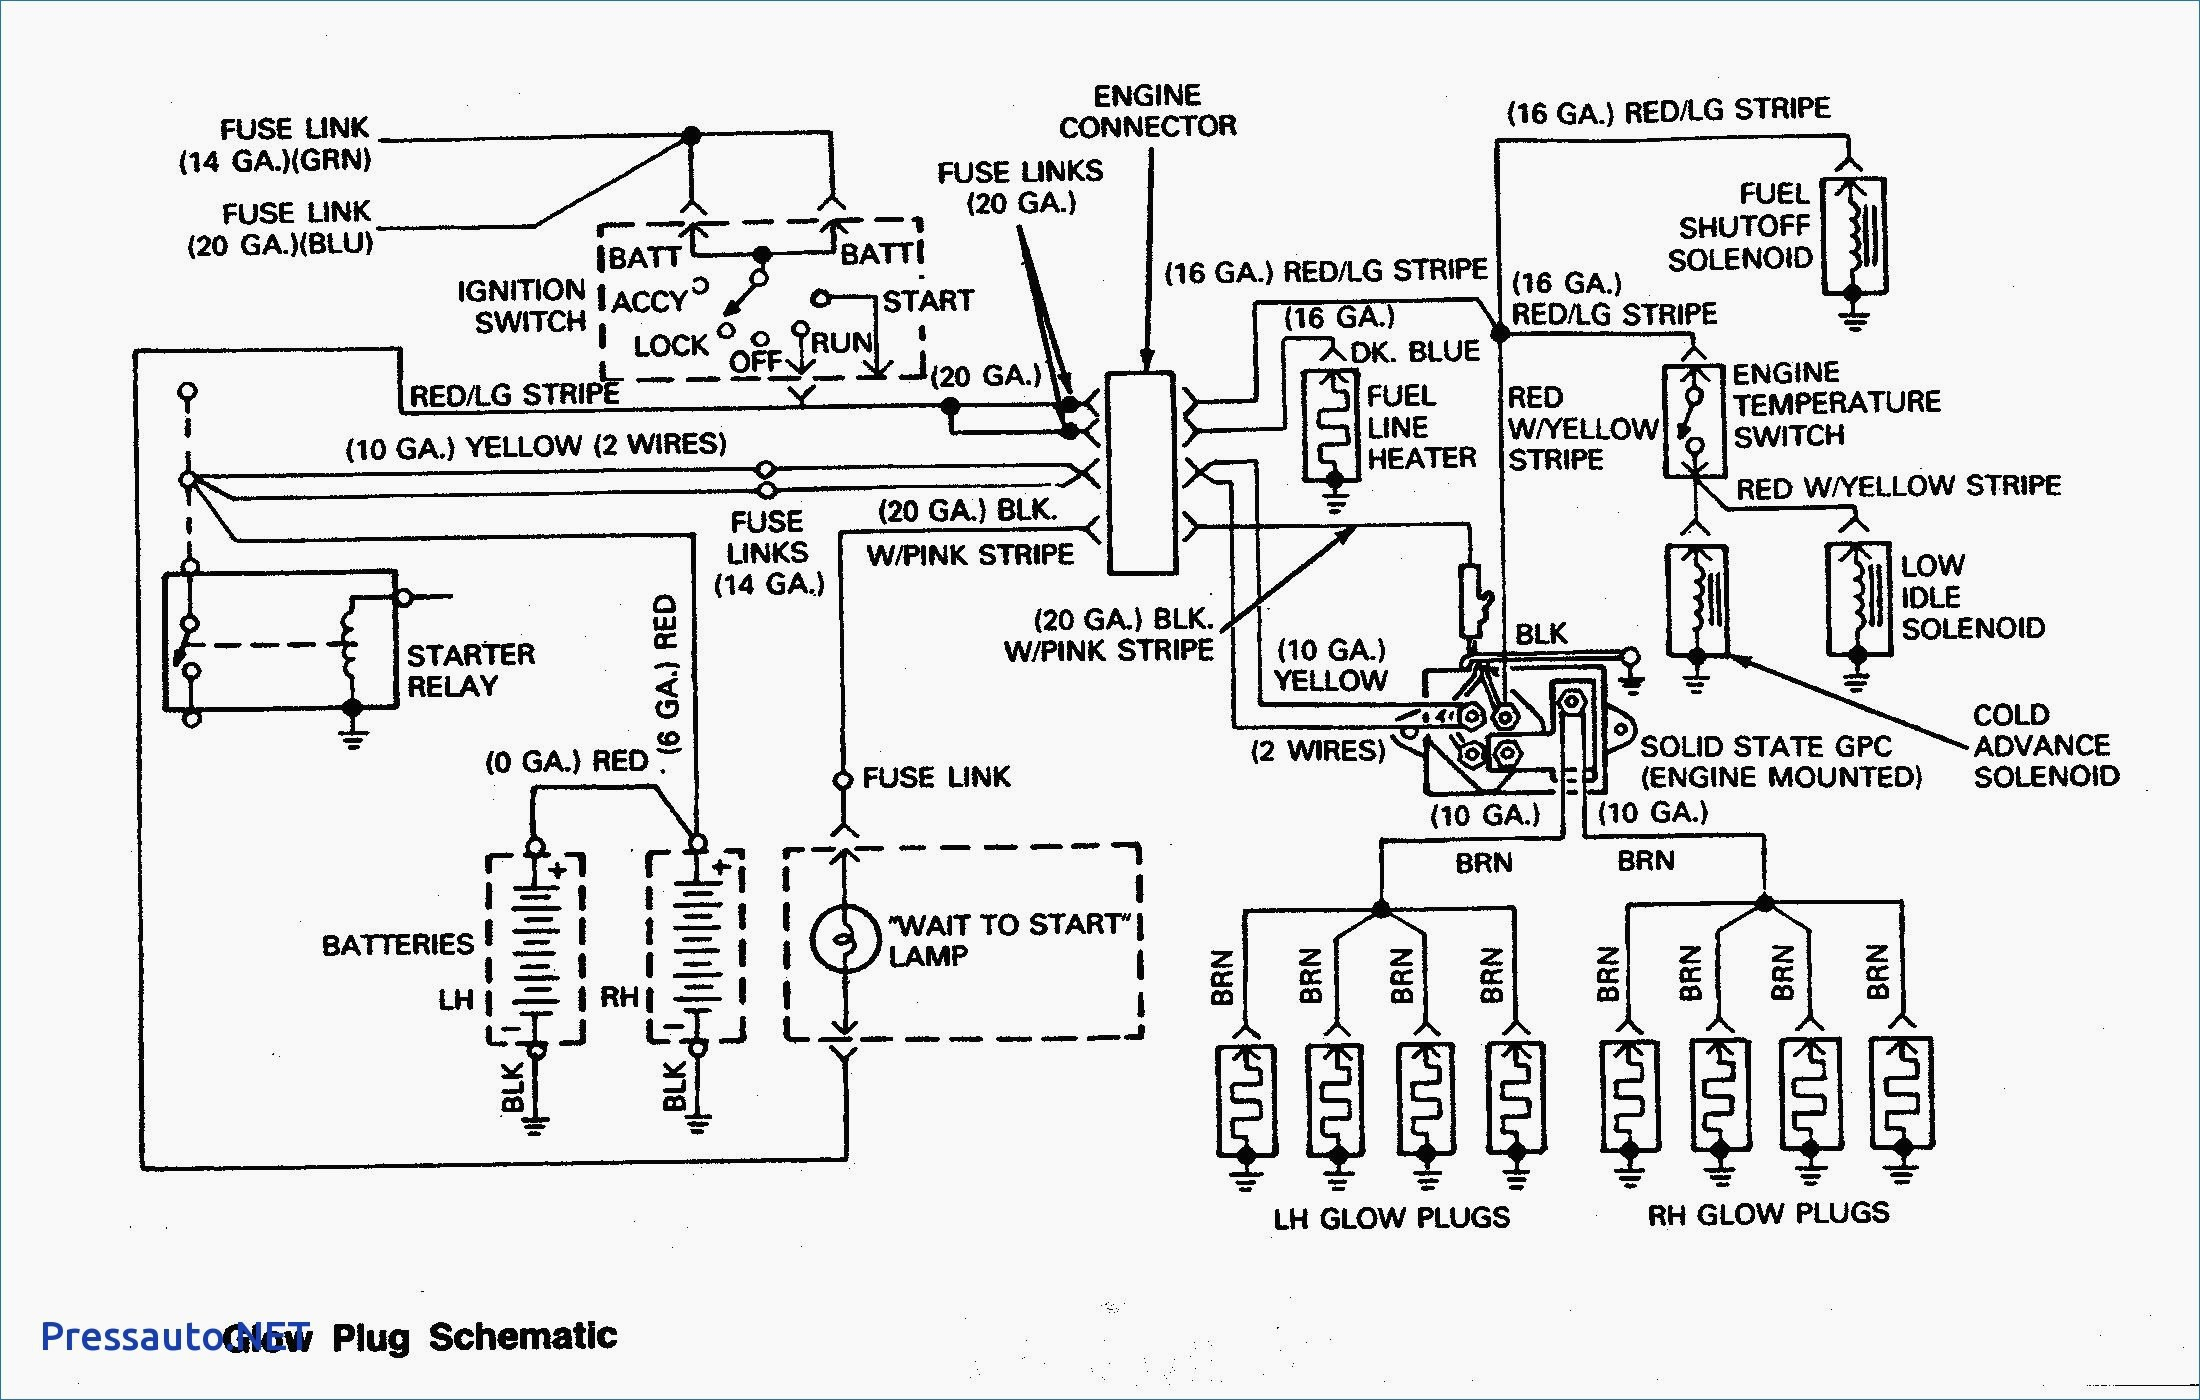 Mahindra 4500 Wiring Diagram - Wiring Diagram Img on